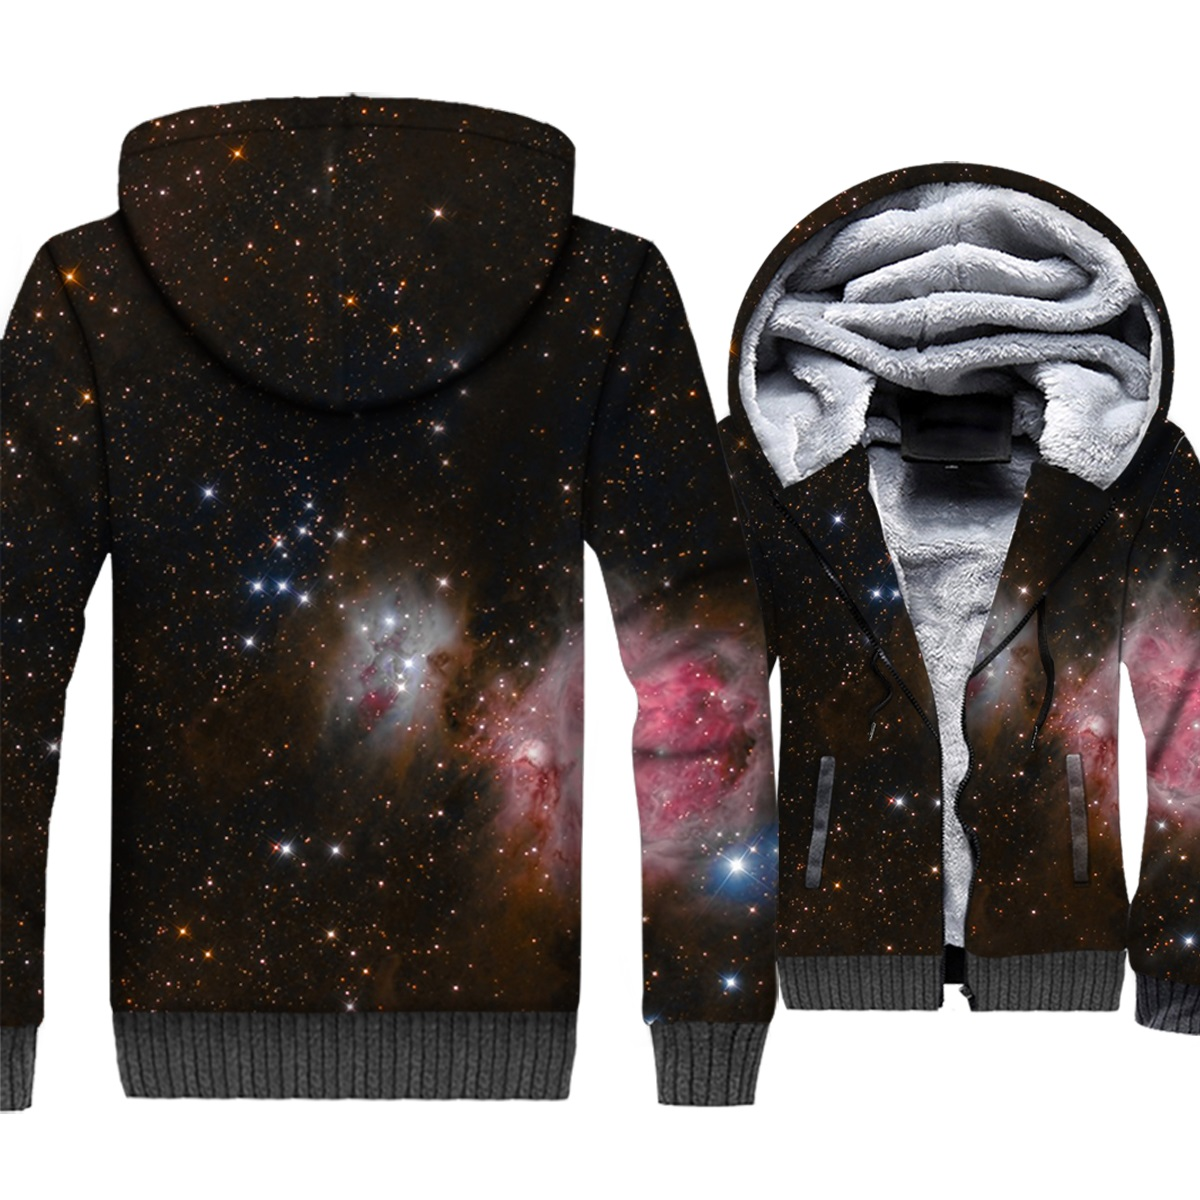 starry sky 3D print hooded tracksuits male men thick long sleeve wool liner coats harajuku sweatshirt 2019 winter casual jackets